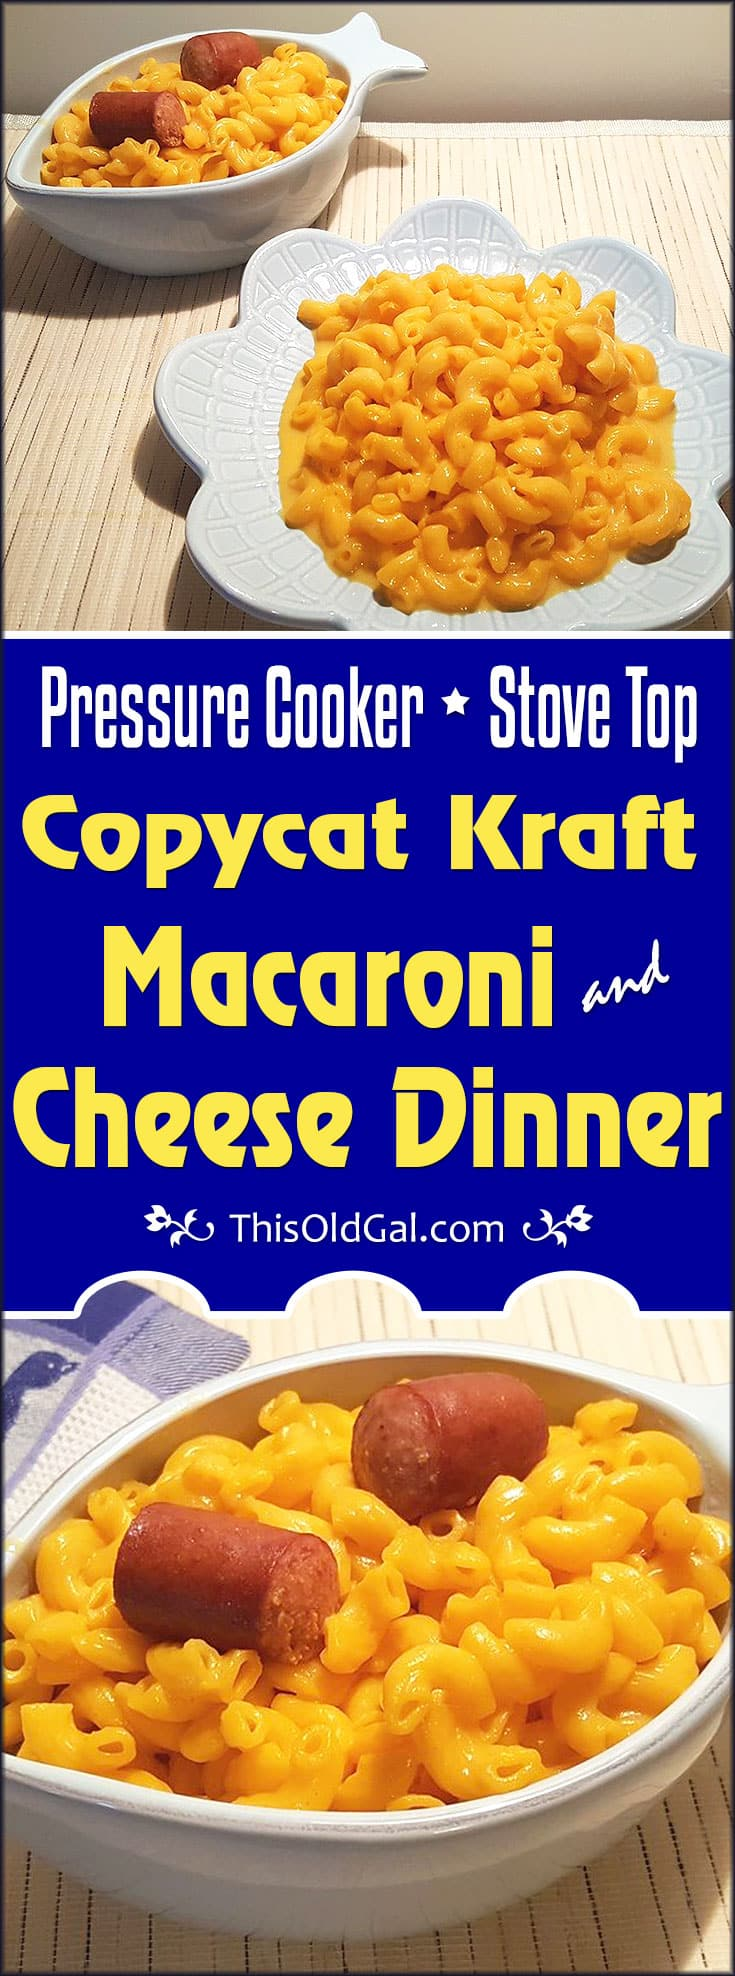 Copycat Kraft Macaroni & Cheese Dinner (Pressure Cooker or Stove Top)